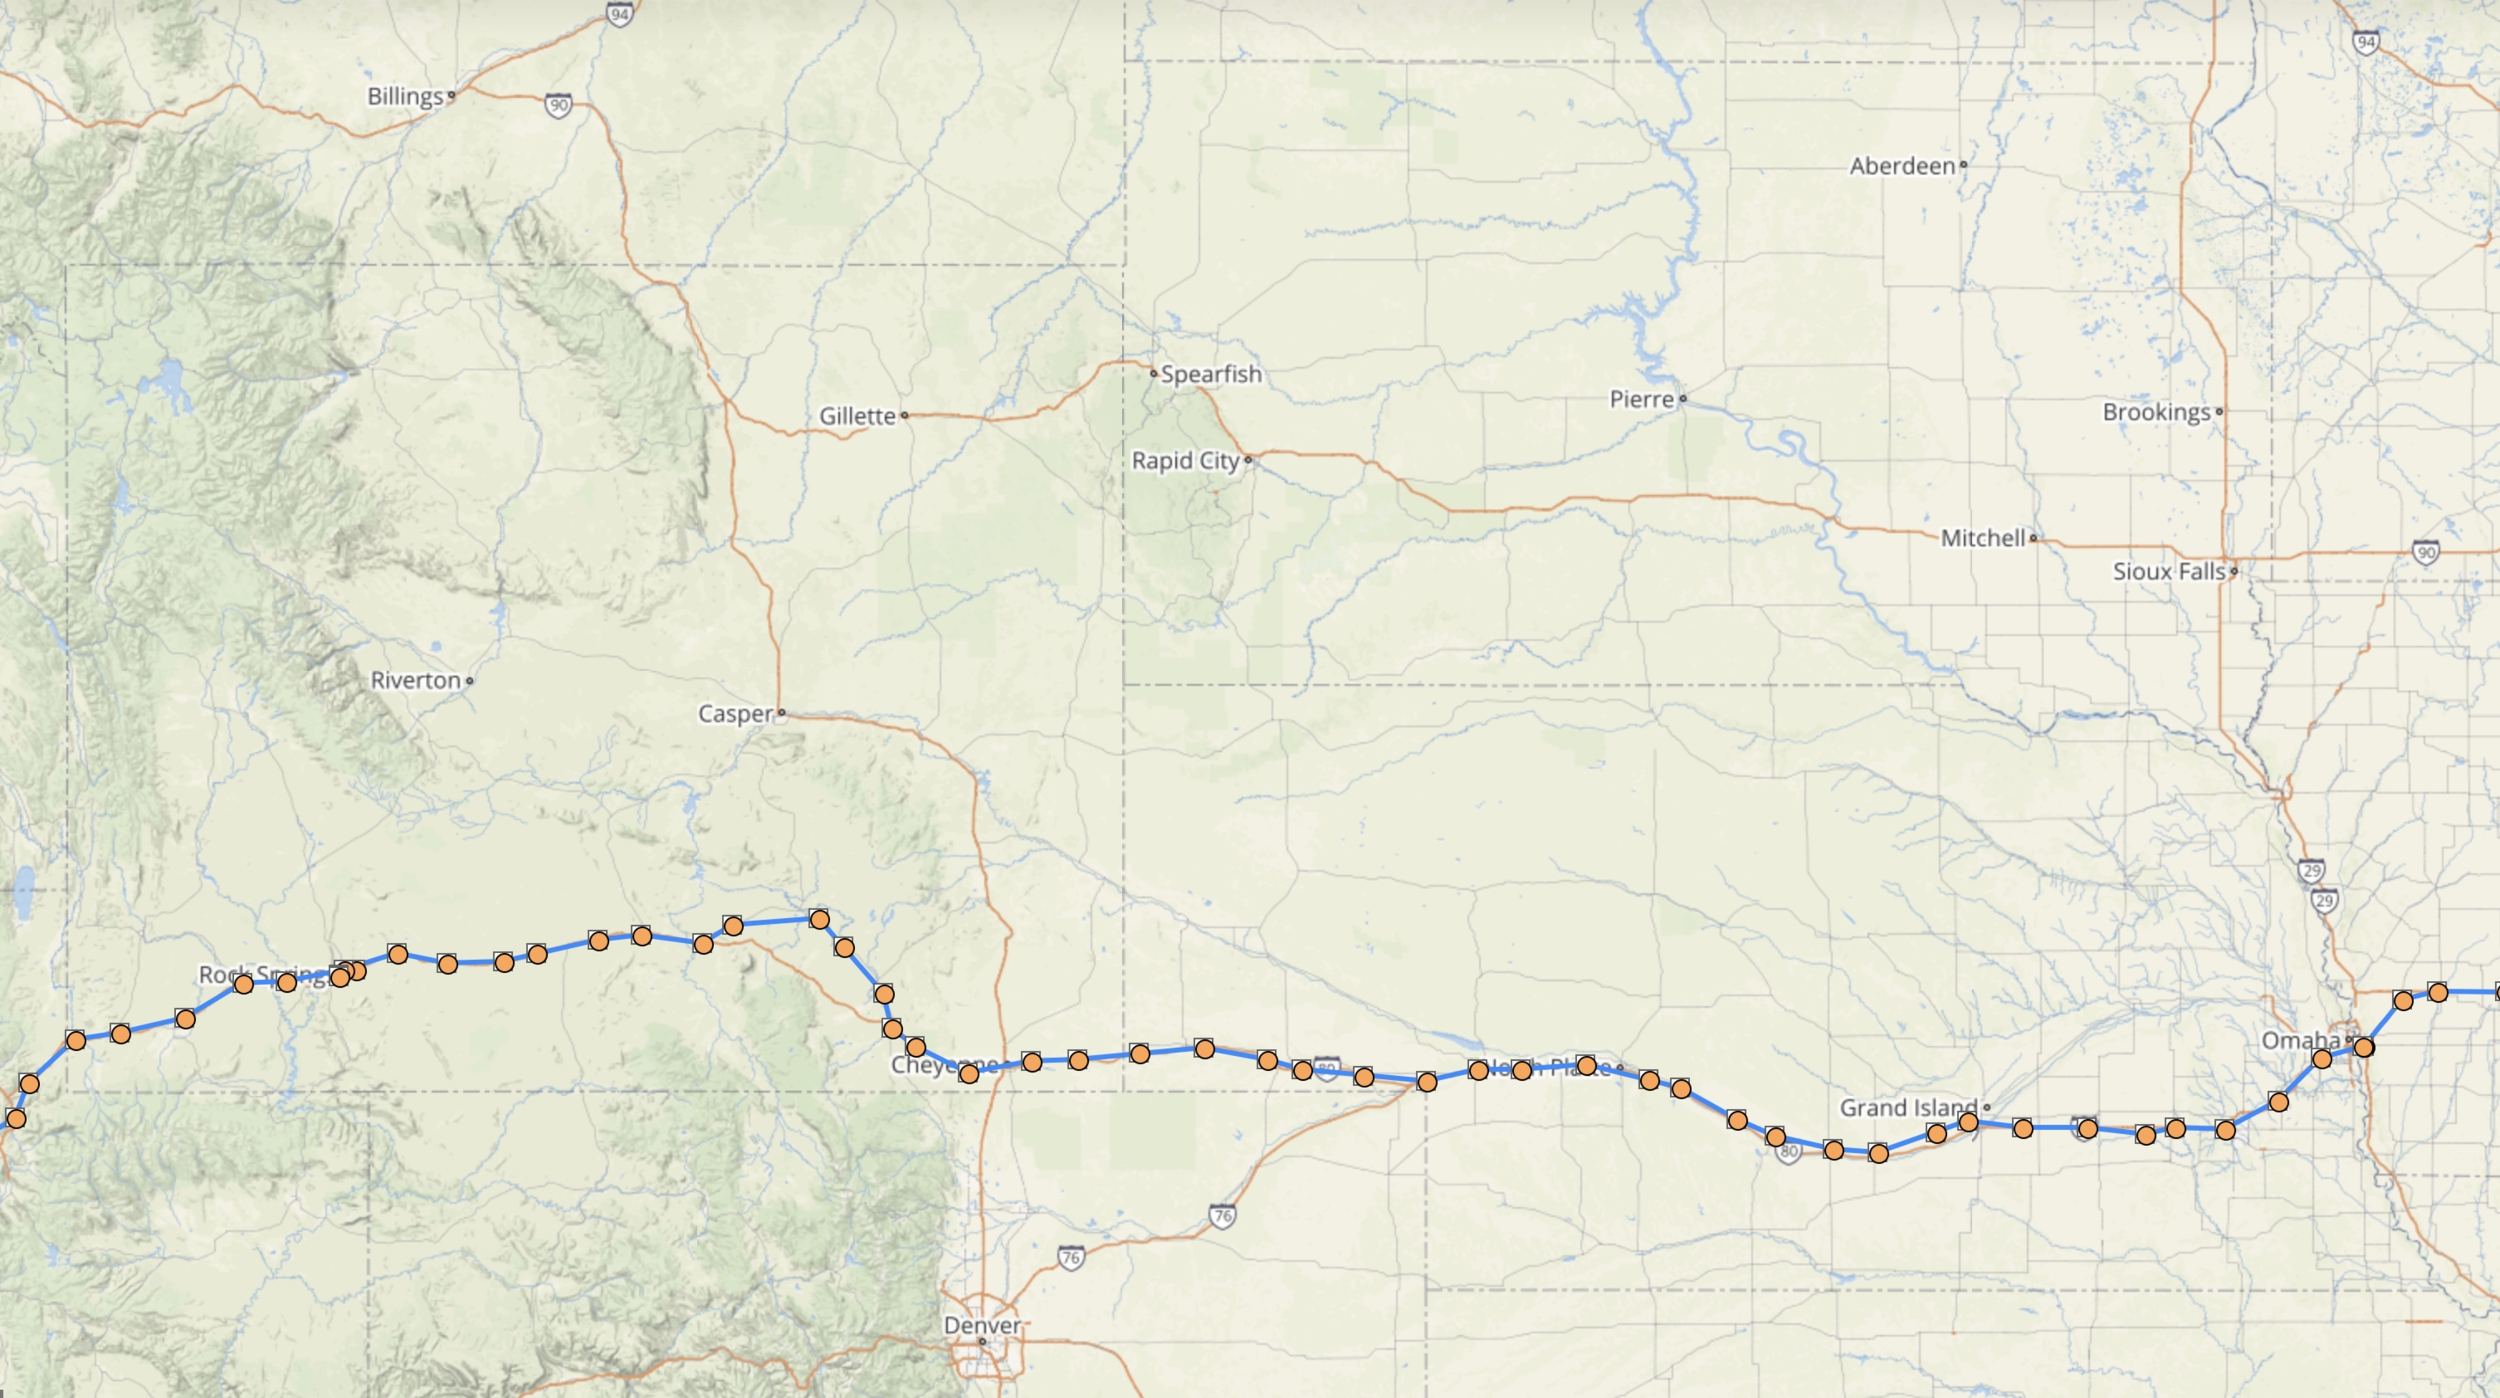 Spotwalla track  of the day's 758-mile ride across Wyoming, Nebraska, and into Iowa.